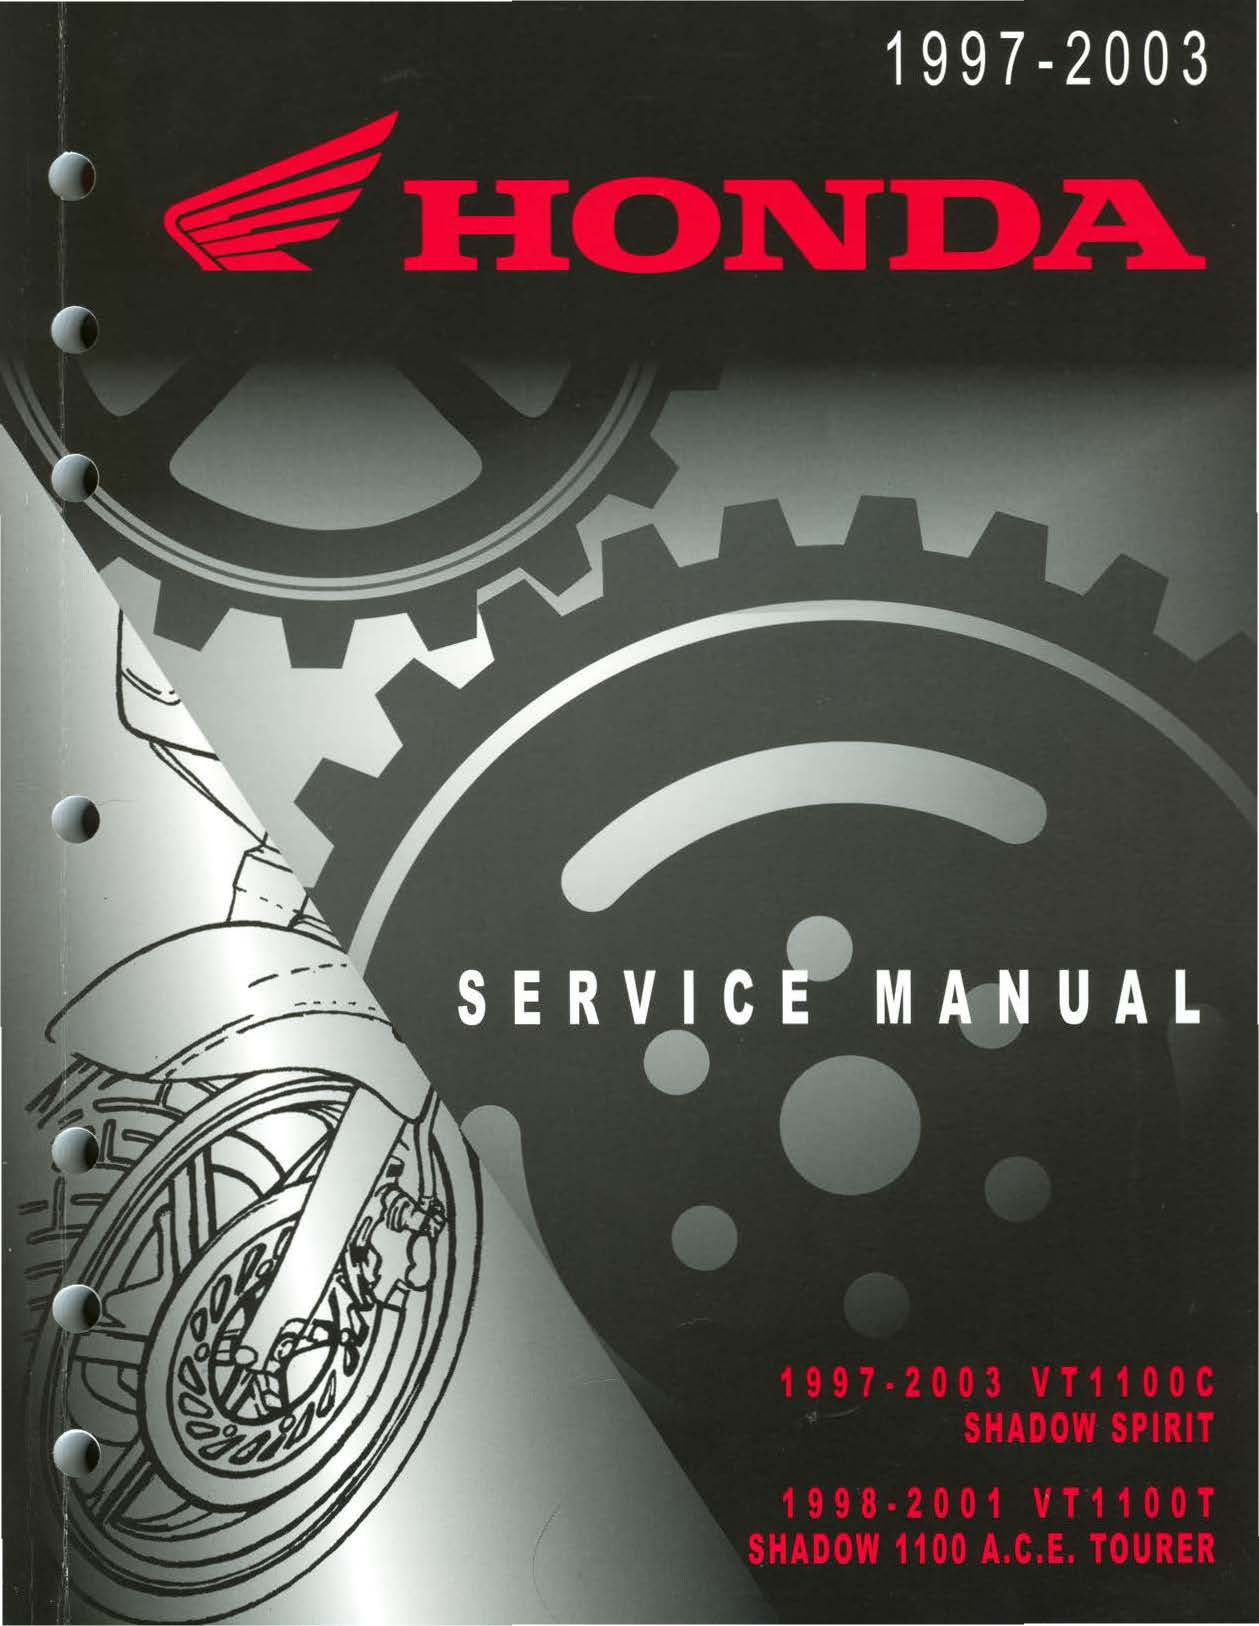 Workshop manual for Honda VT1100T Shadow (1998-2001)